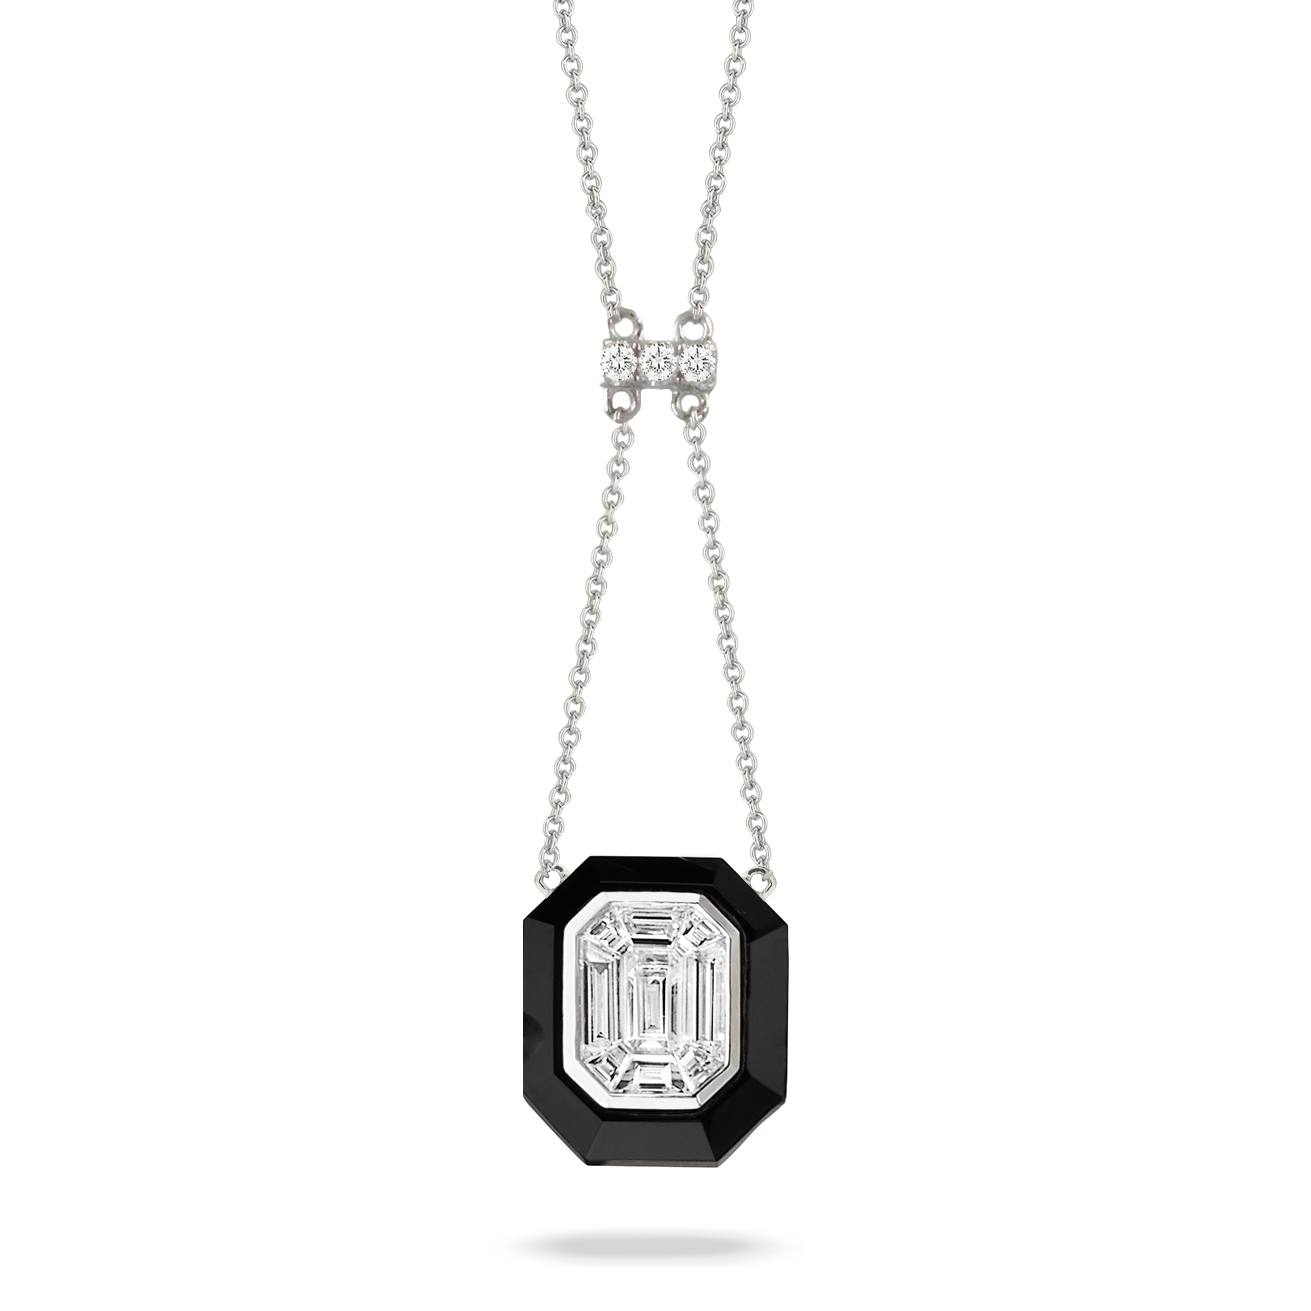 18K White Gold Onyx Necklace - 18K White Gold Invisible Set Diamond Necklace With Black Onyx